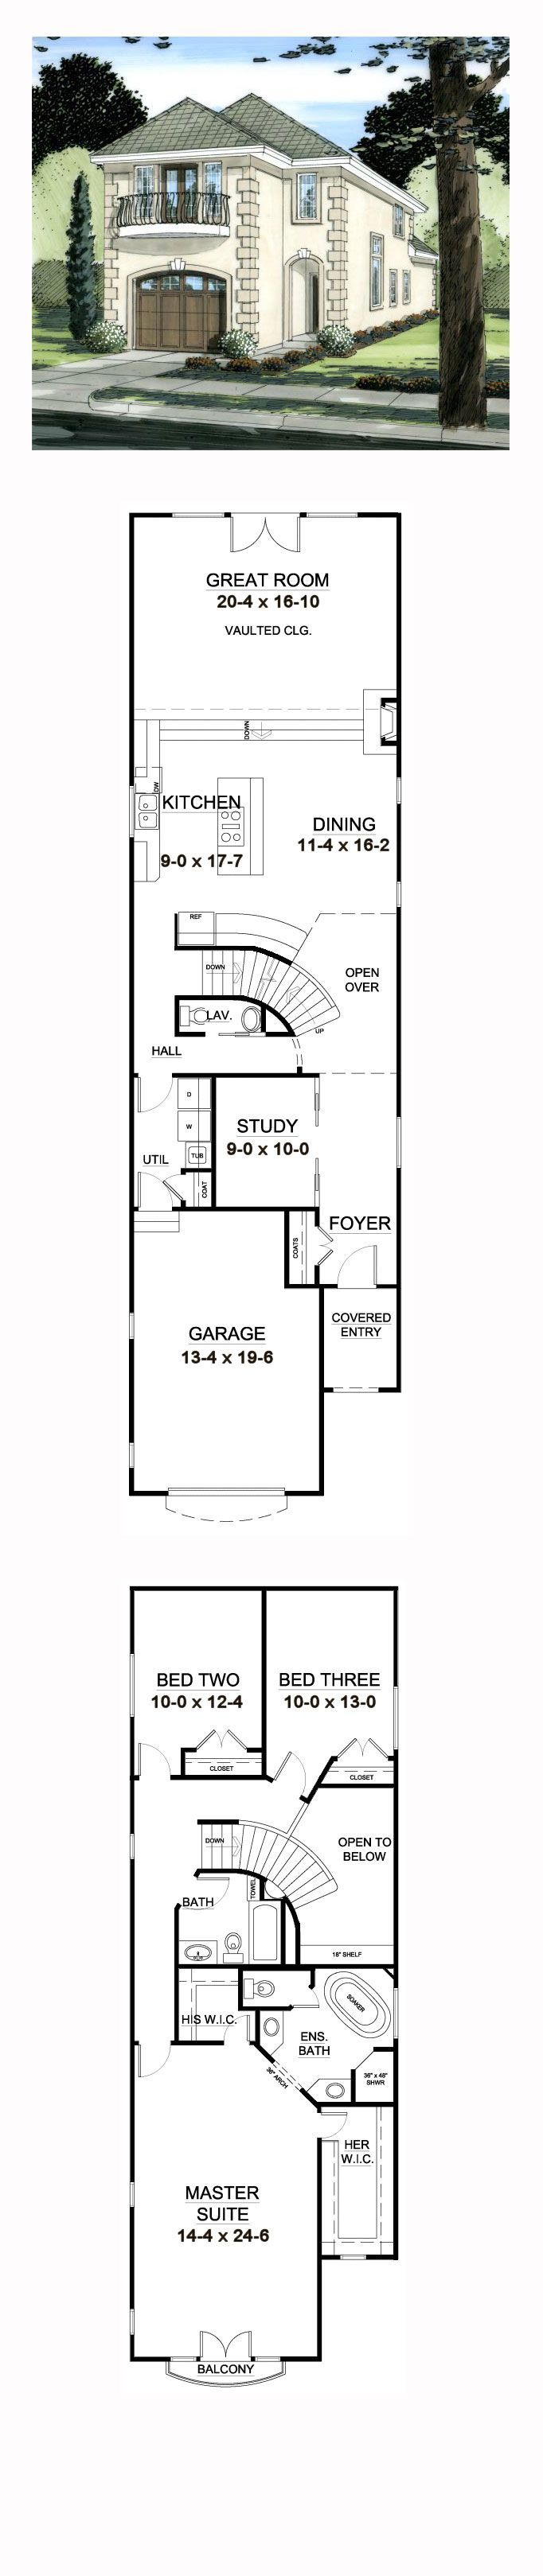 Florida house plan 99997 narrow lot house plans and bedrooms for Narrow lot one story house plans